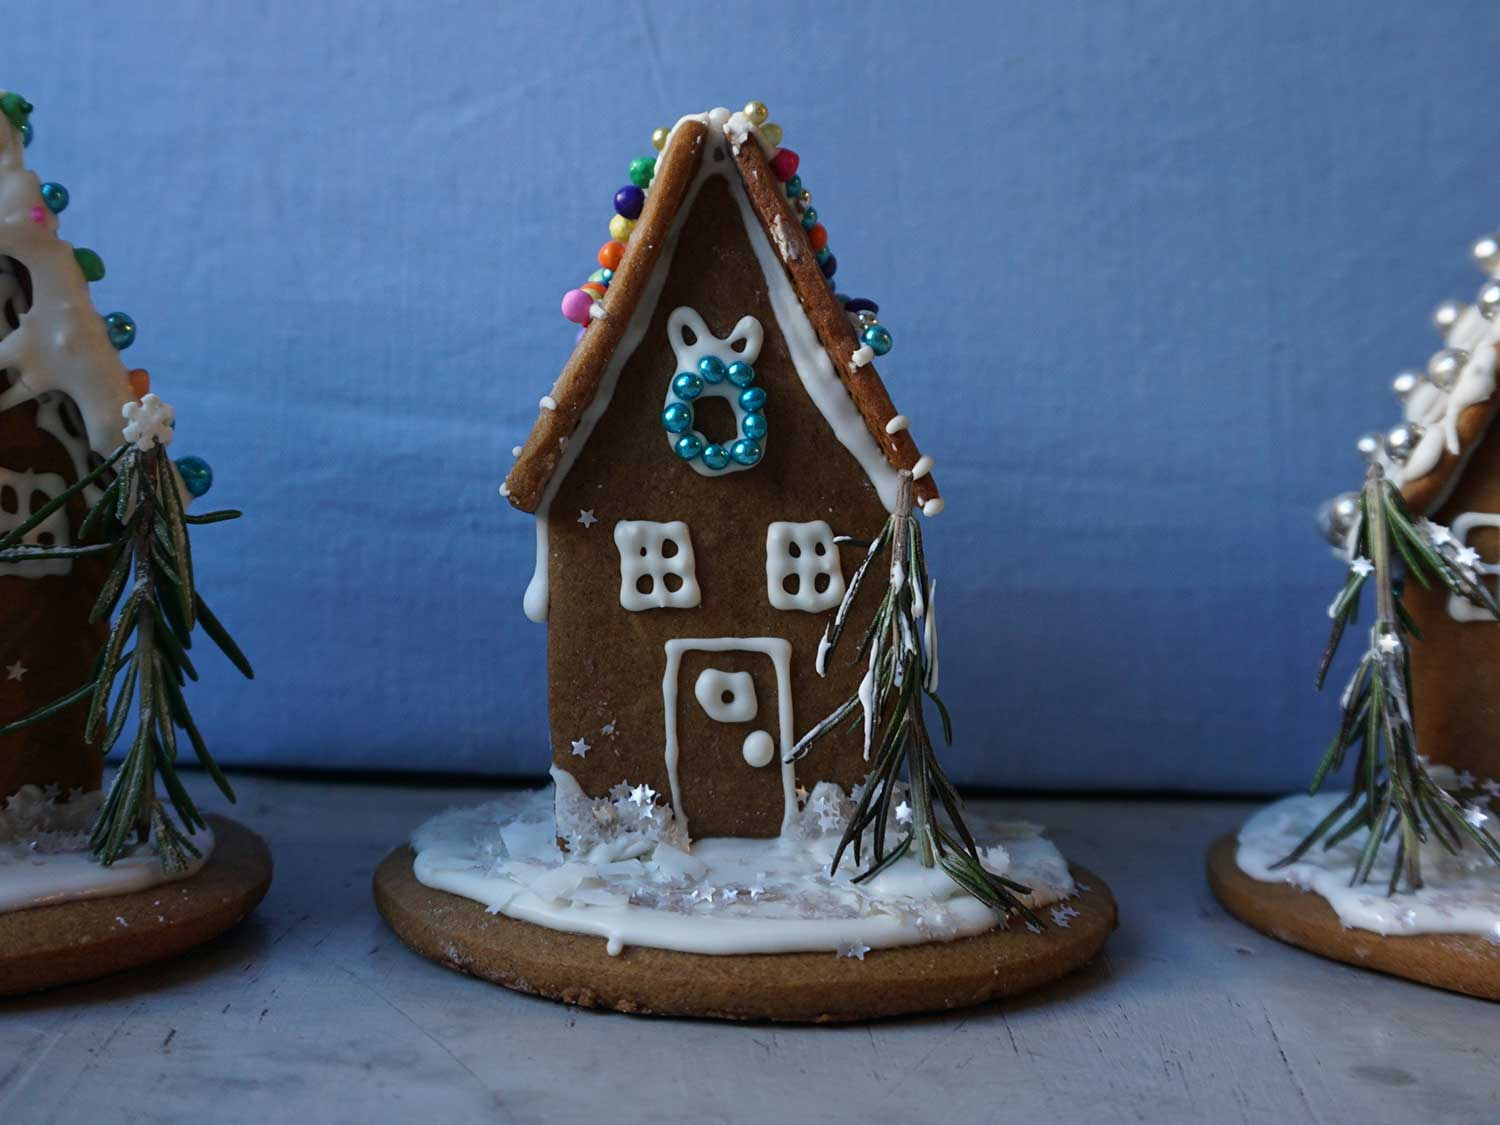 How to Build a Gingerbread House, From Dough to Decor